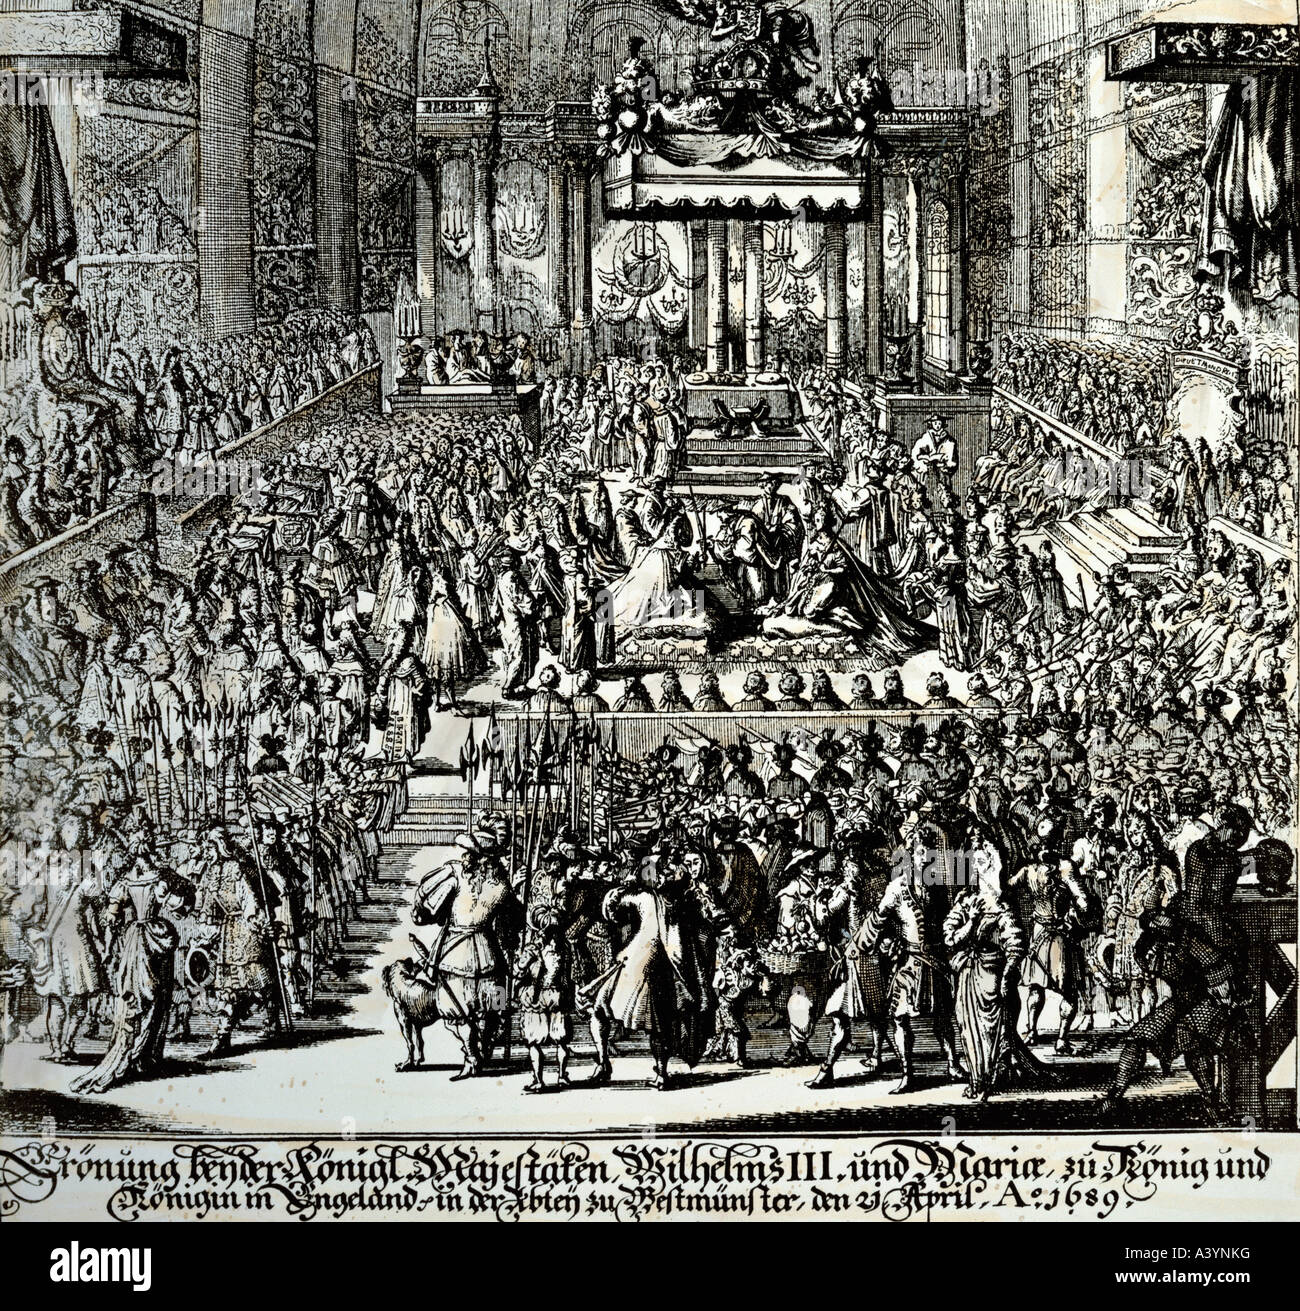 William III of Orange, 14.11.1650 - 19.3.1702, king of England from 13.2.1689 - 19.3.1702, coronation at Westminster - Stock Image